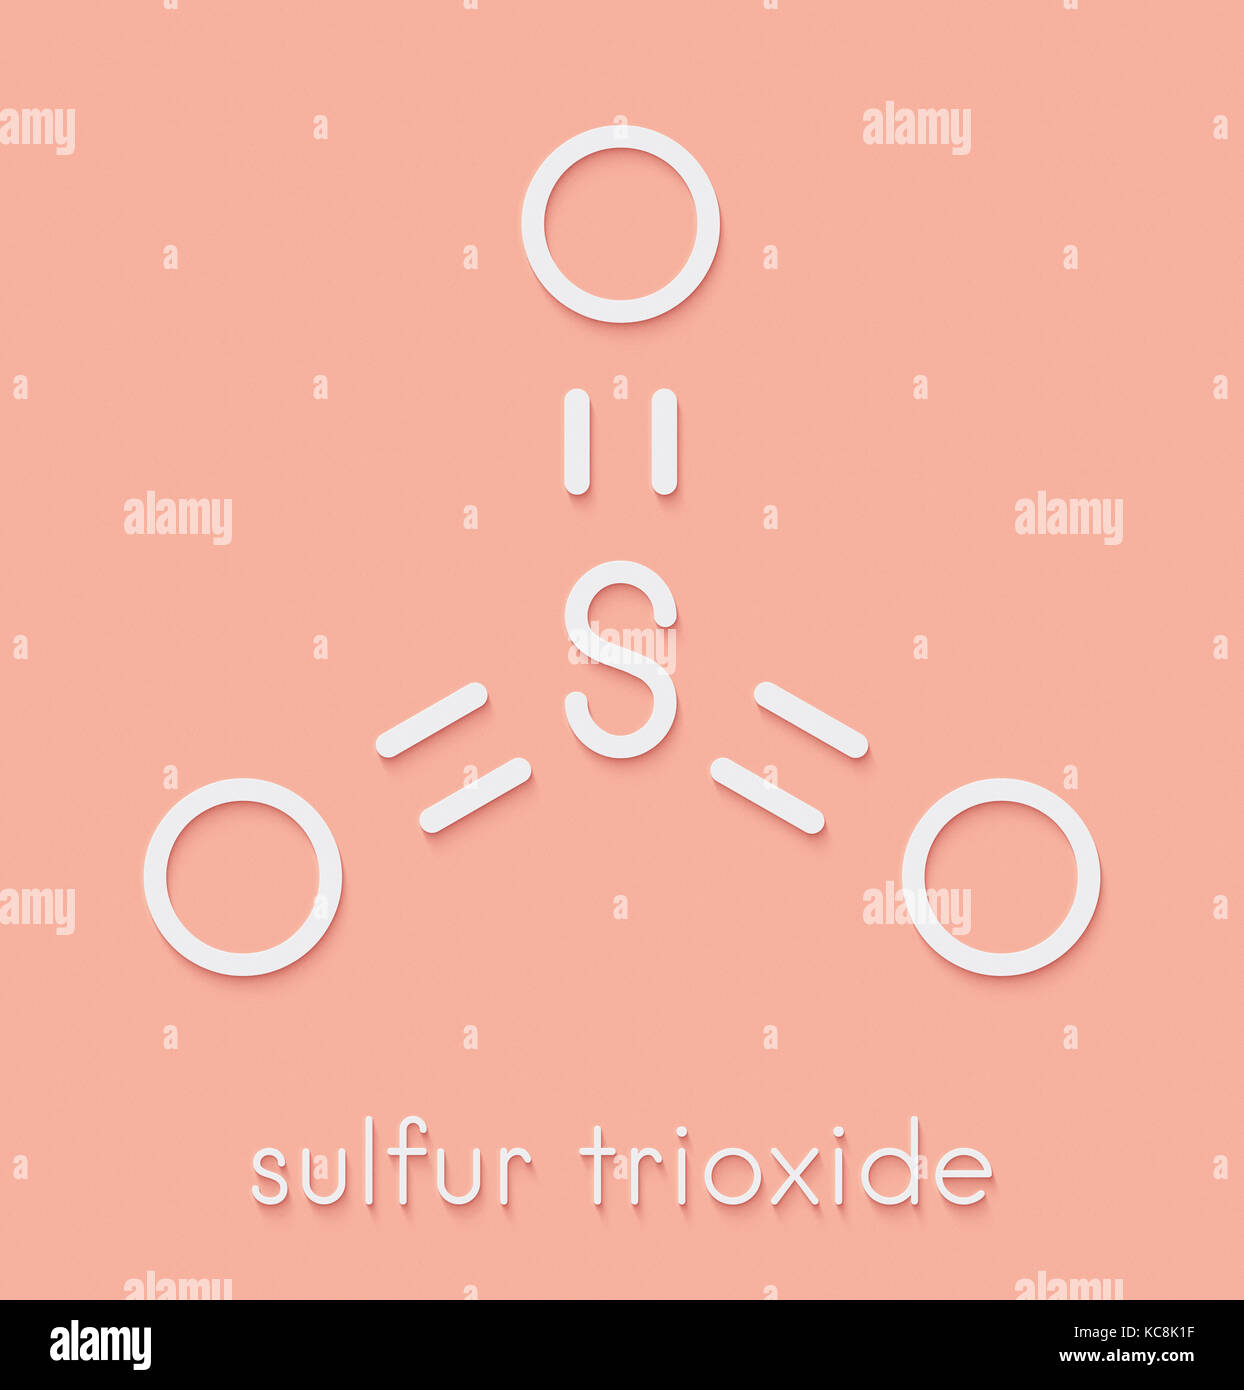 how to make sulfuric acid from sulfur